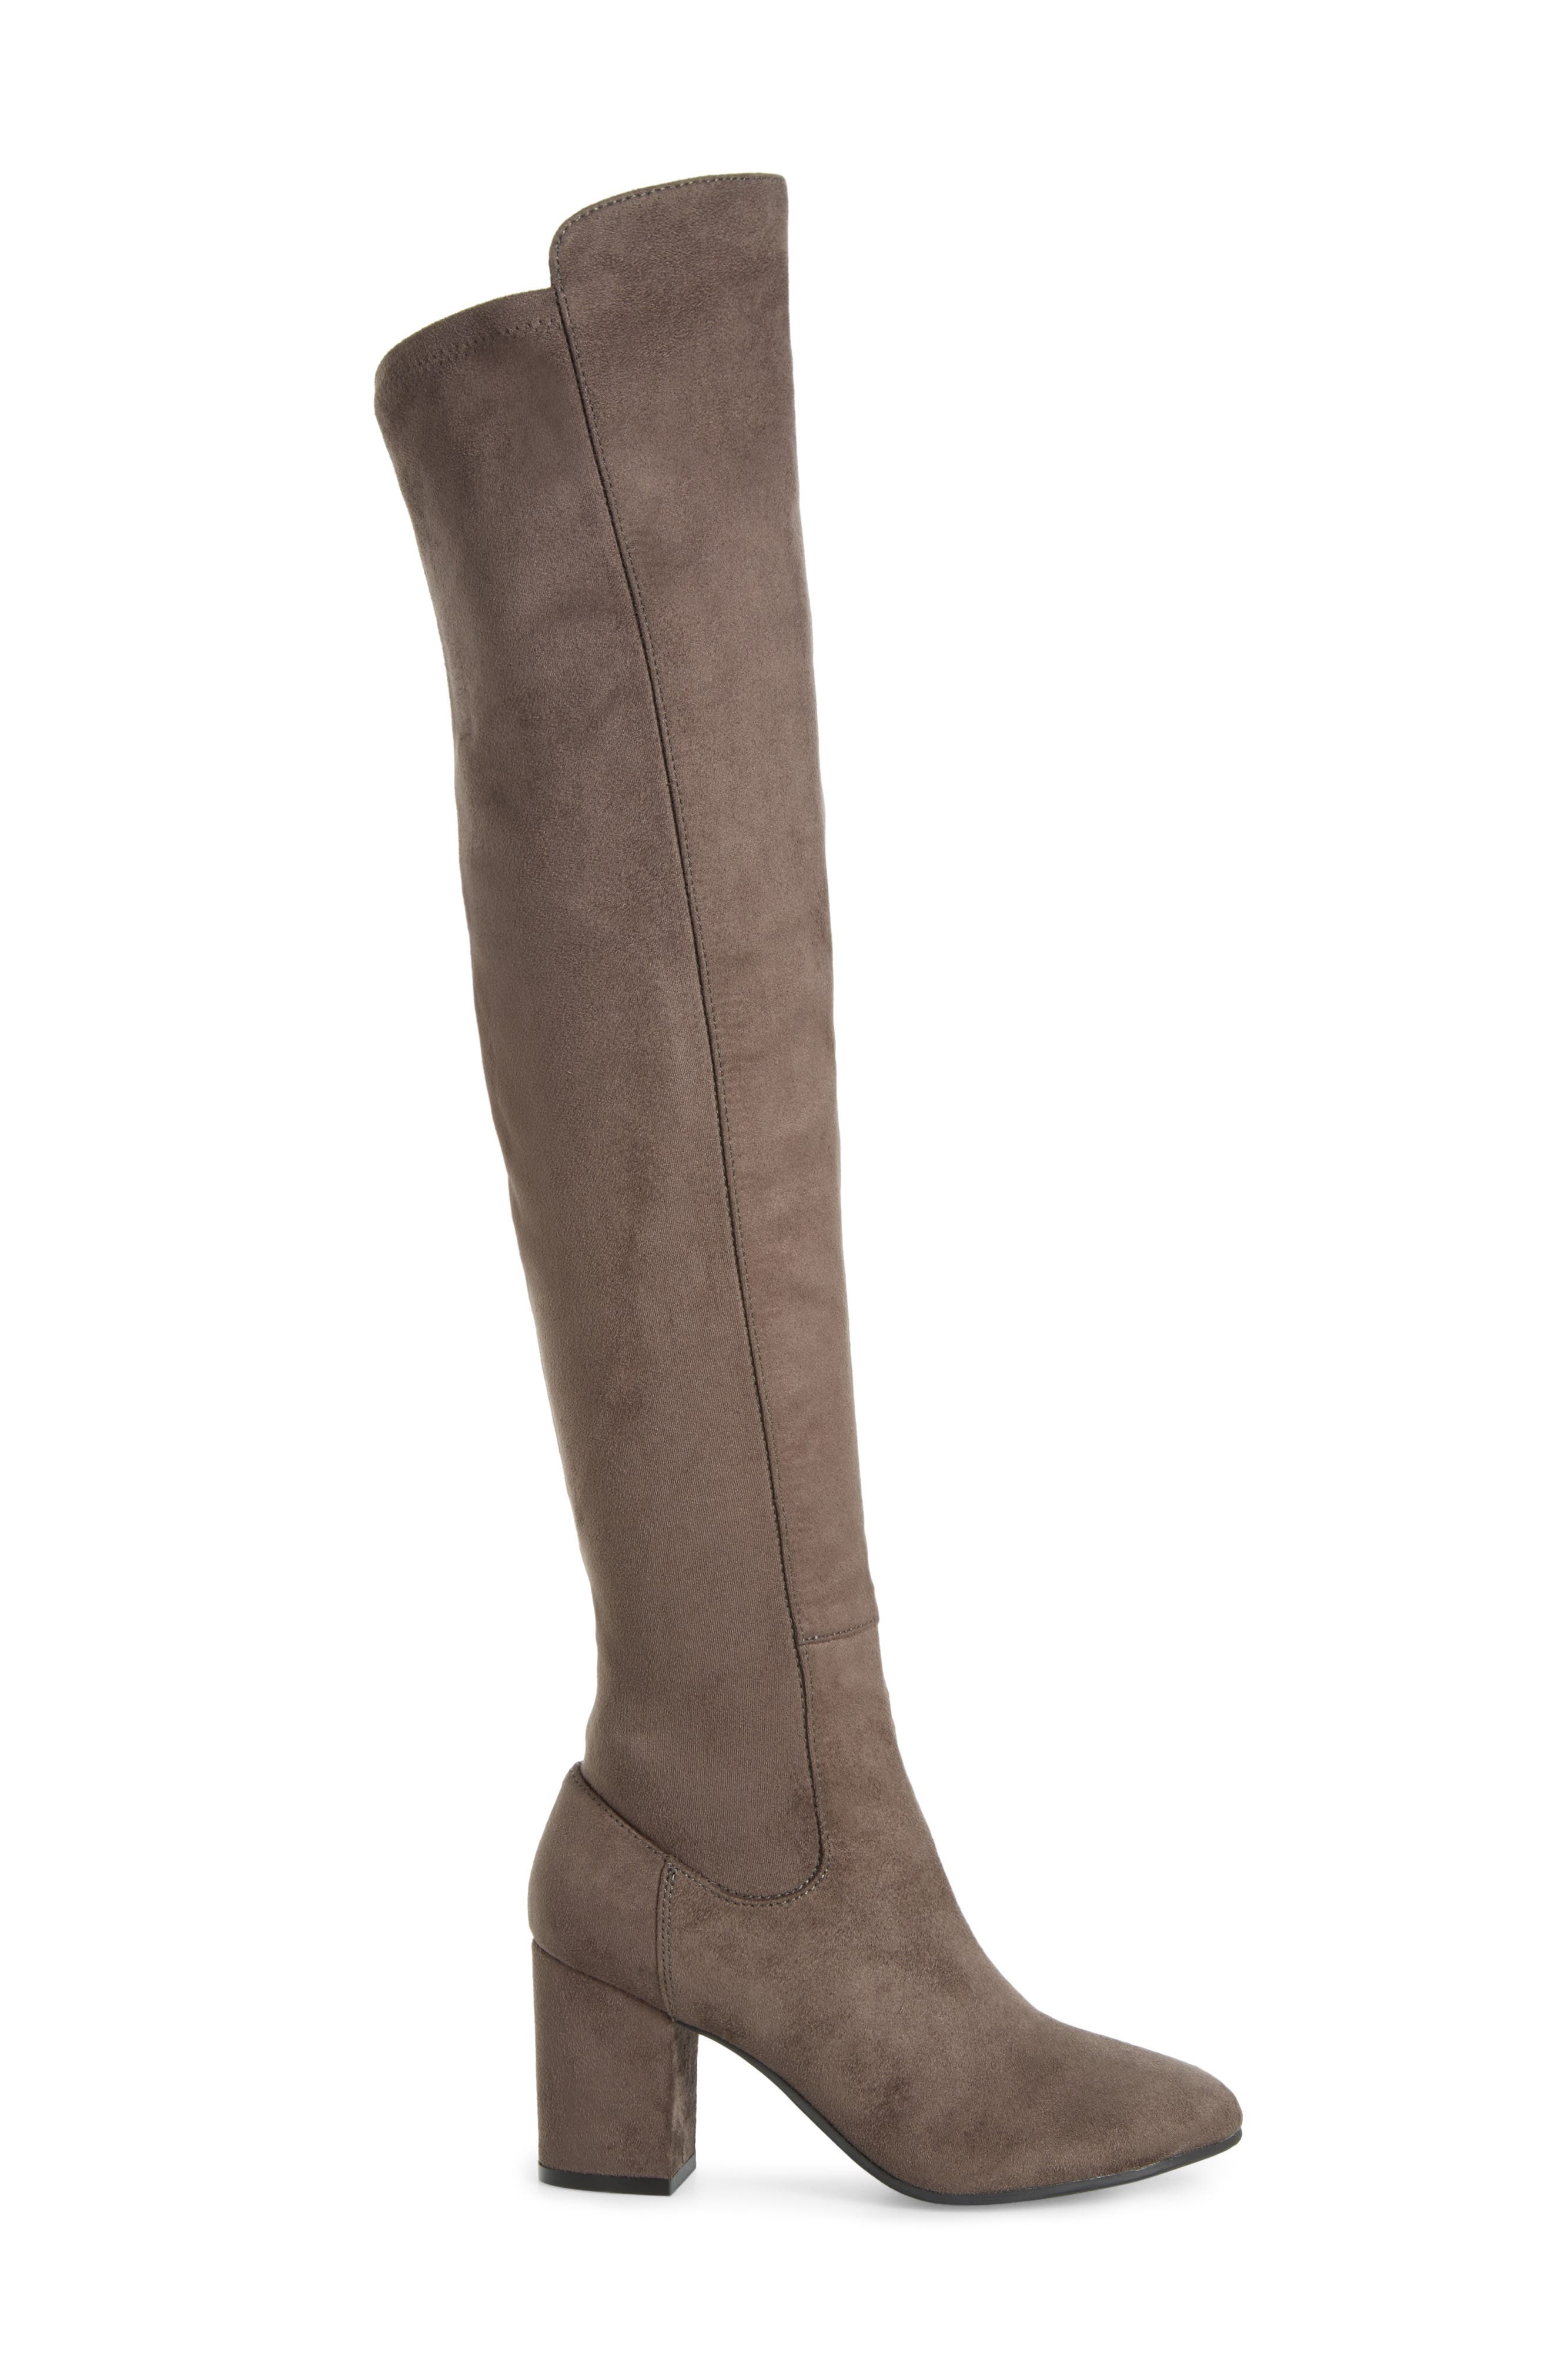 Lynx Stretch Over the Knee Boot,                             Alternate thumbnail 4, color,                             Charcoal Faux Suede